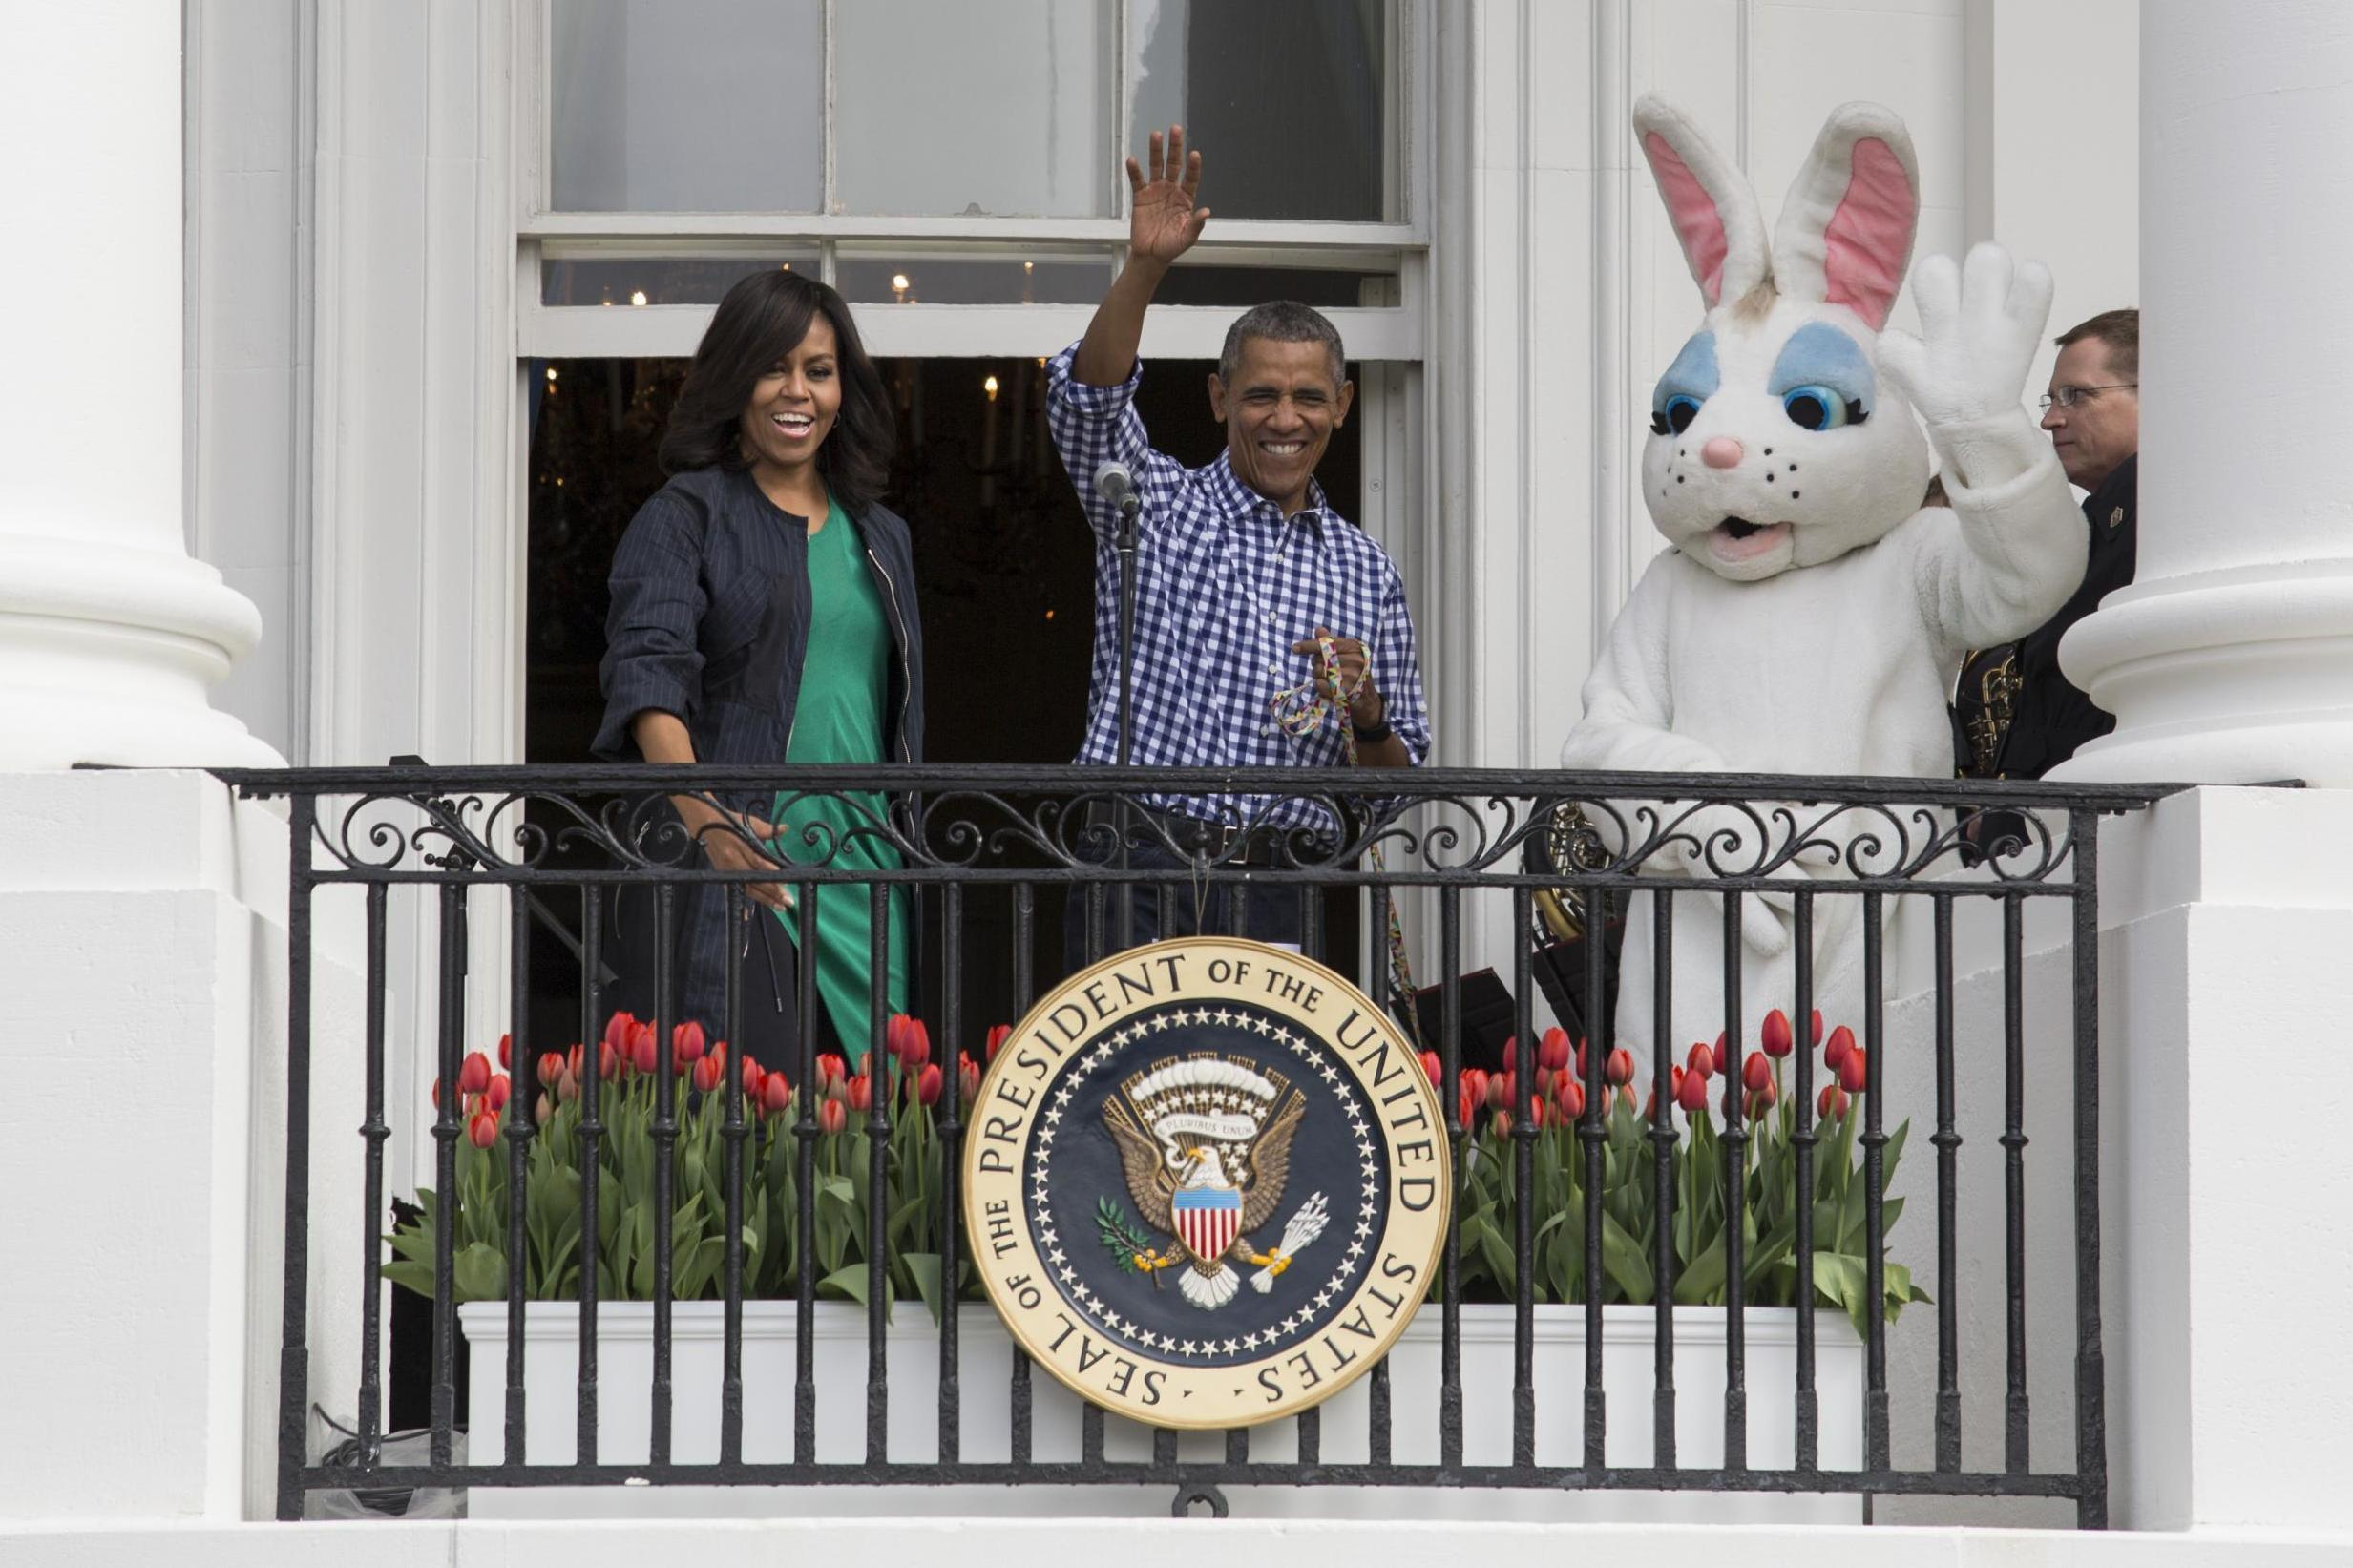 Michelle Obama says she feels 'newfound sense of gratitude for all the little moments' in Easter message thumbnail